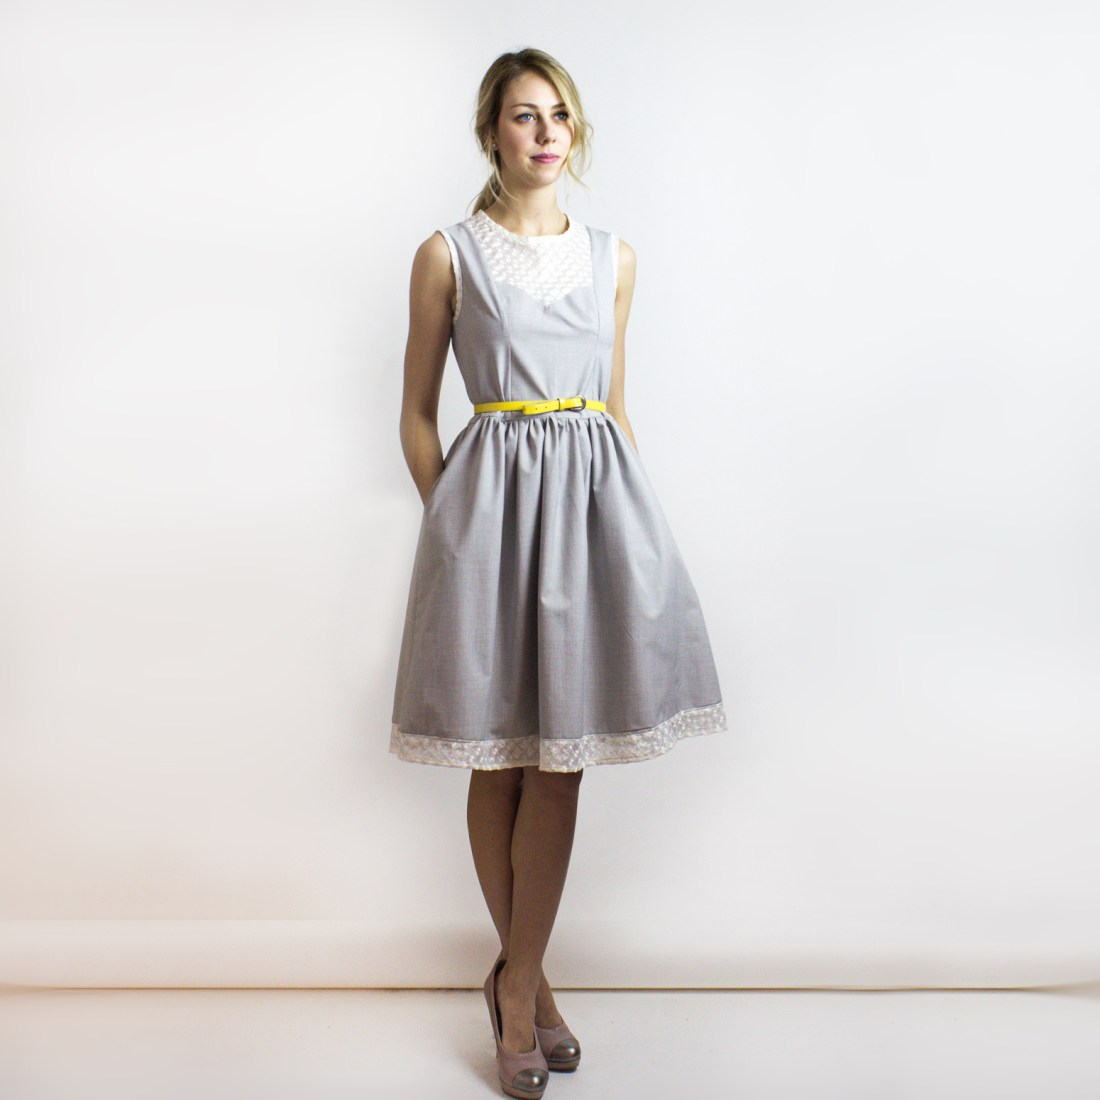 Ginger New Look Garden Party Dress from Simone's Rose SS16 Collection | eco-conscious and sustainable women's fashion label made in downtown Toronto